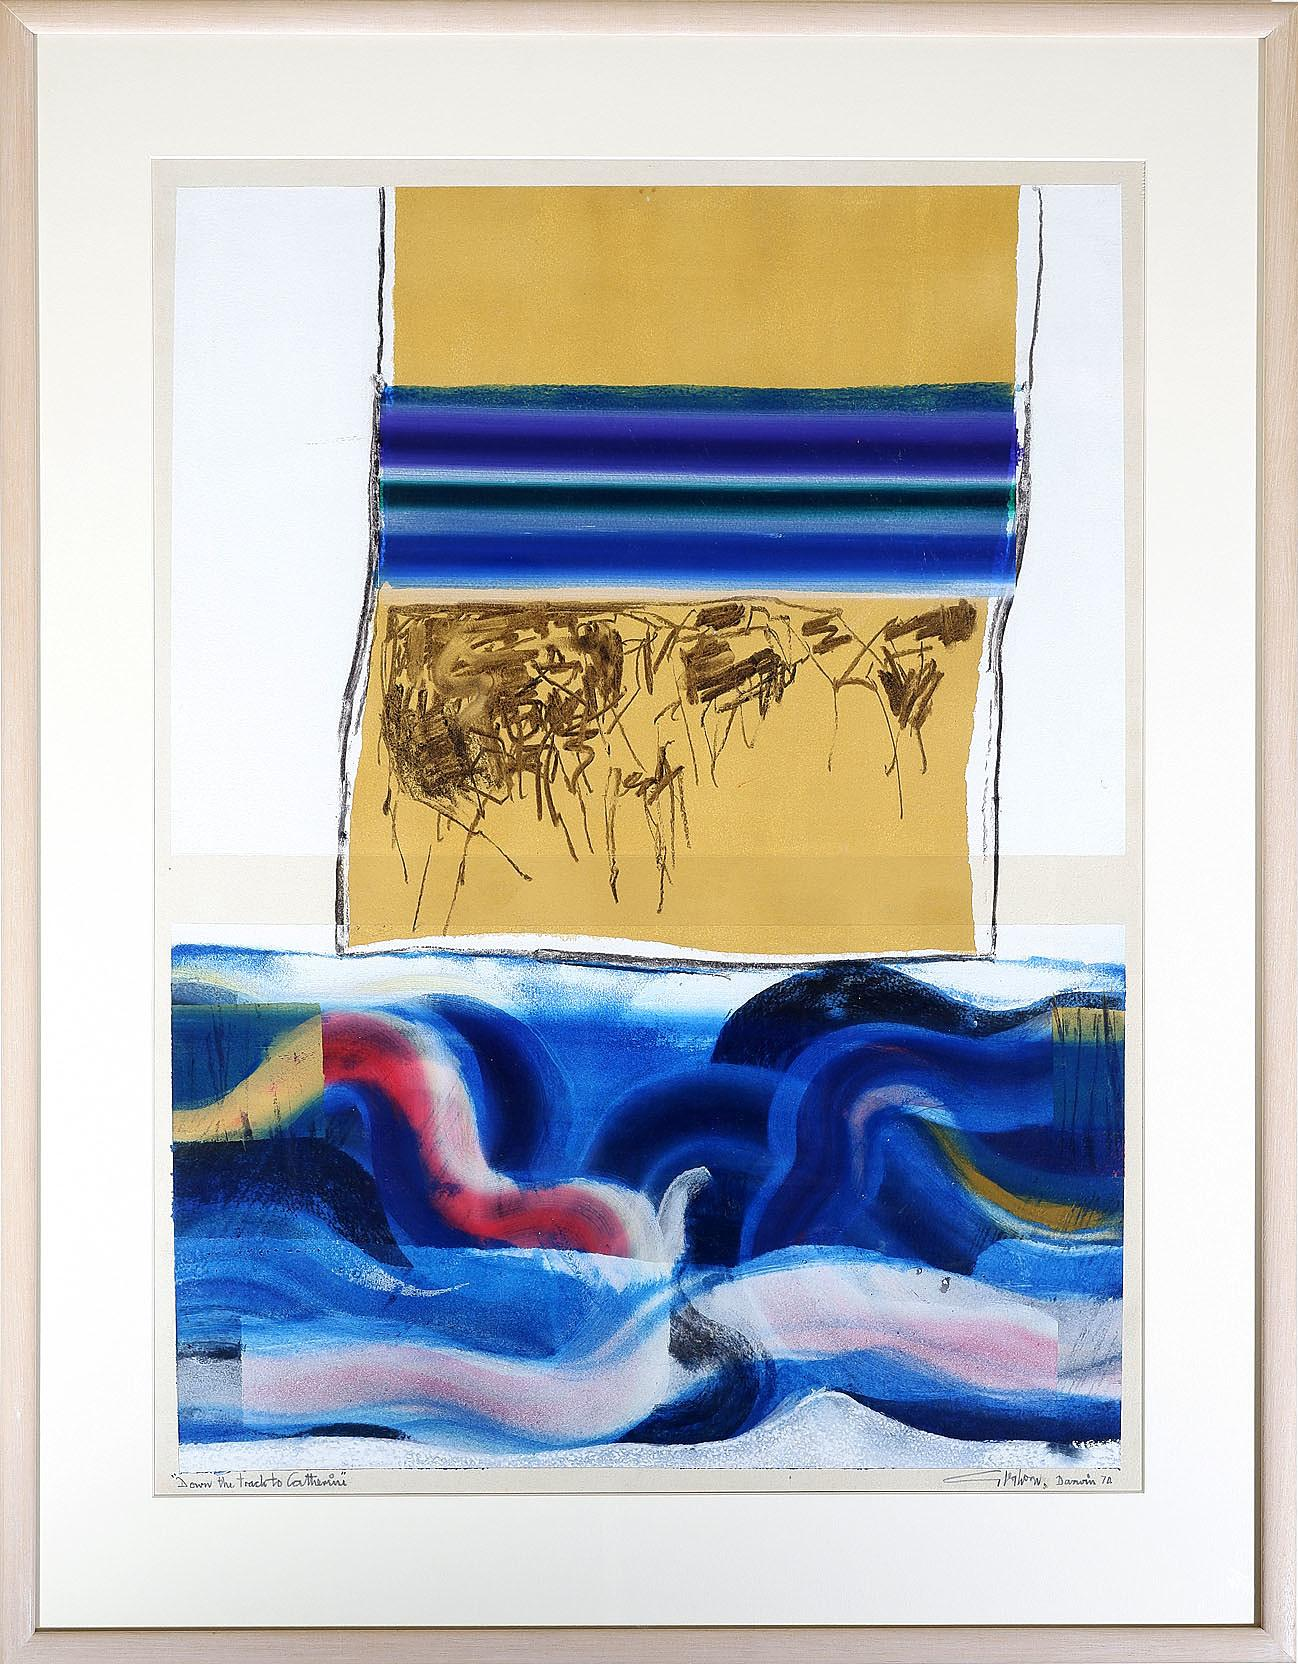 'Tom Gleghorn (b. 1925) Down the Track to Catherine, Mixed Media on Paper'